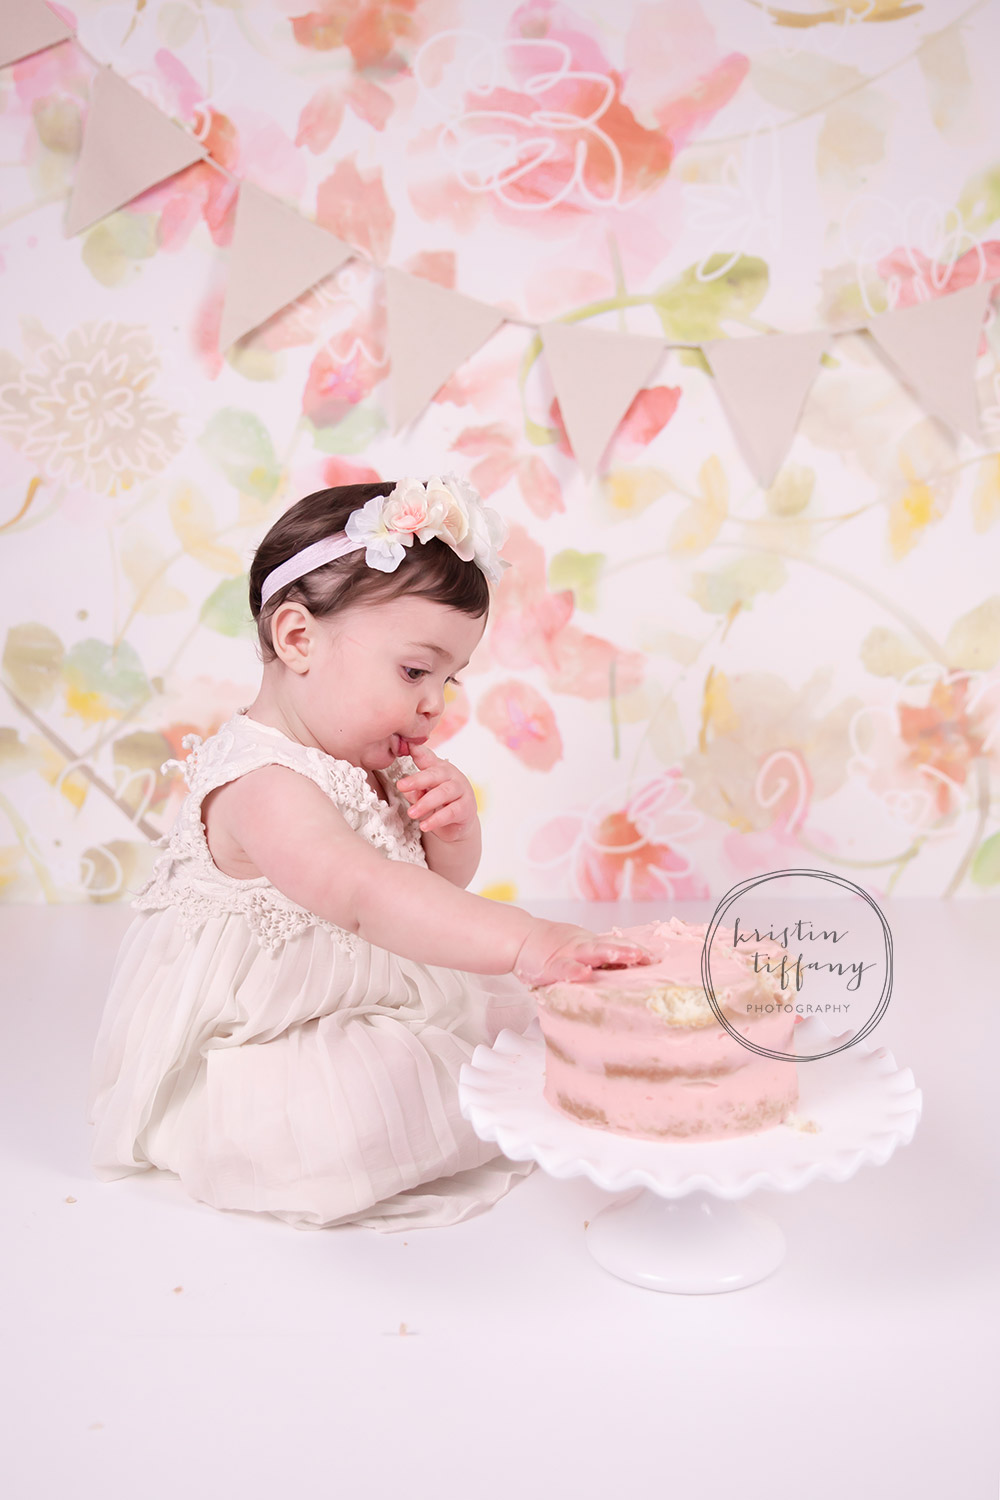 a photo of a baby girl eating cake at her cake smash session